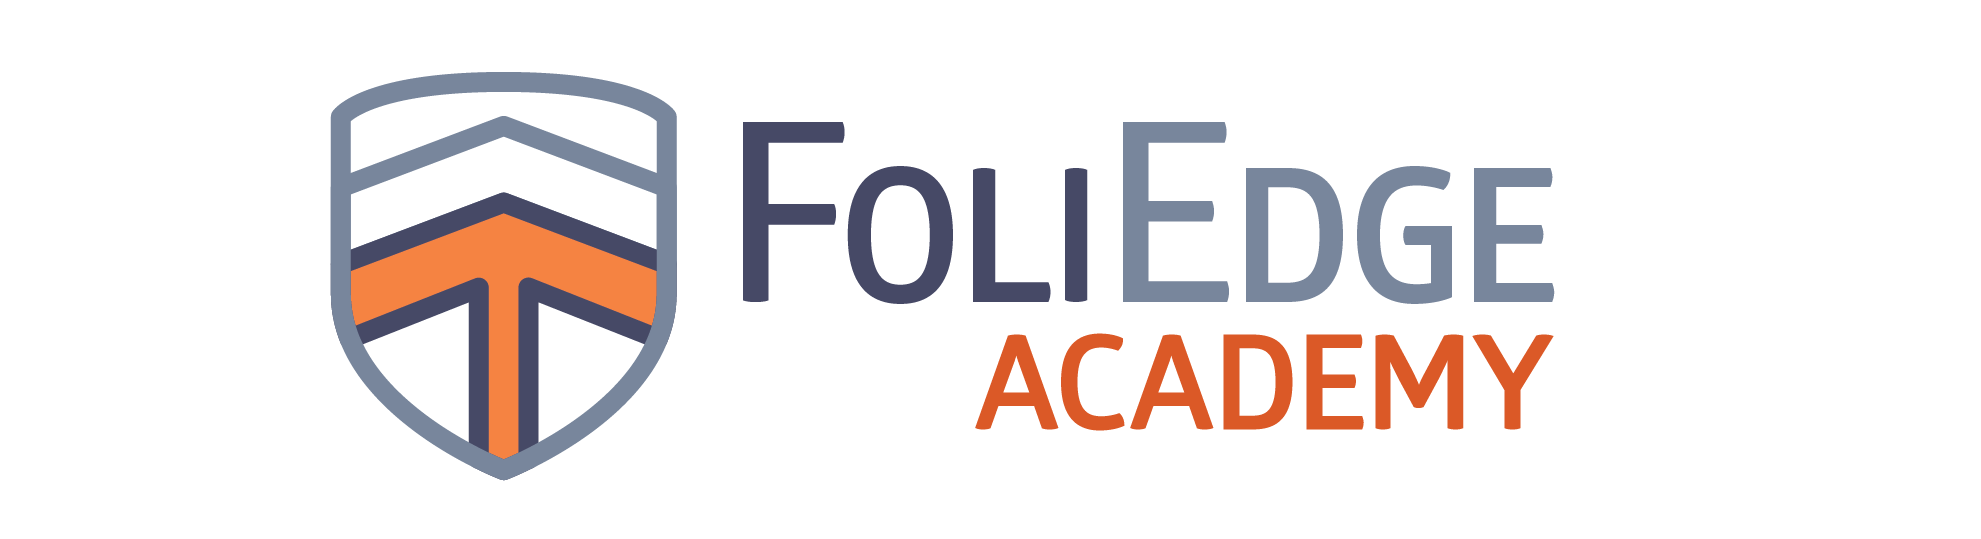 Aleafia Health's FoliEdge Academy Launching Cannabis Education Courses at a Major Post-Secondary Institution